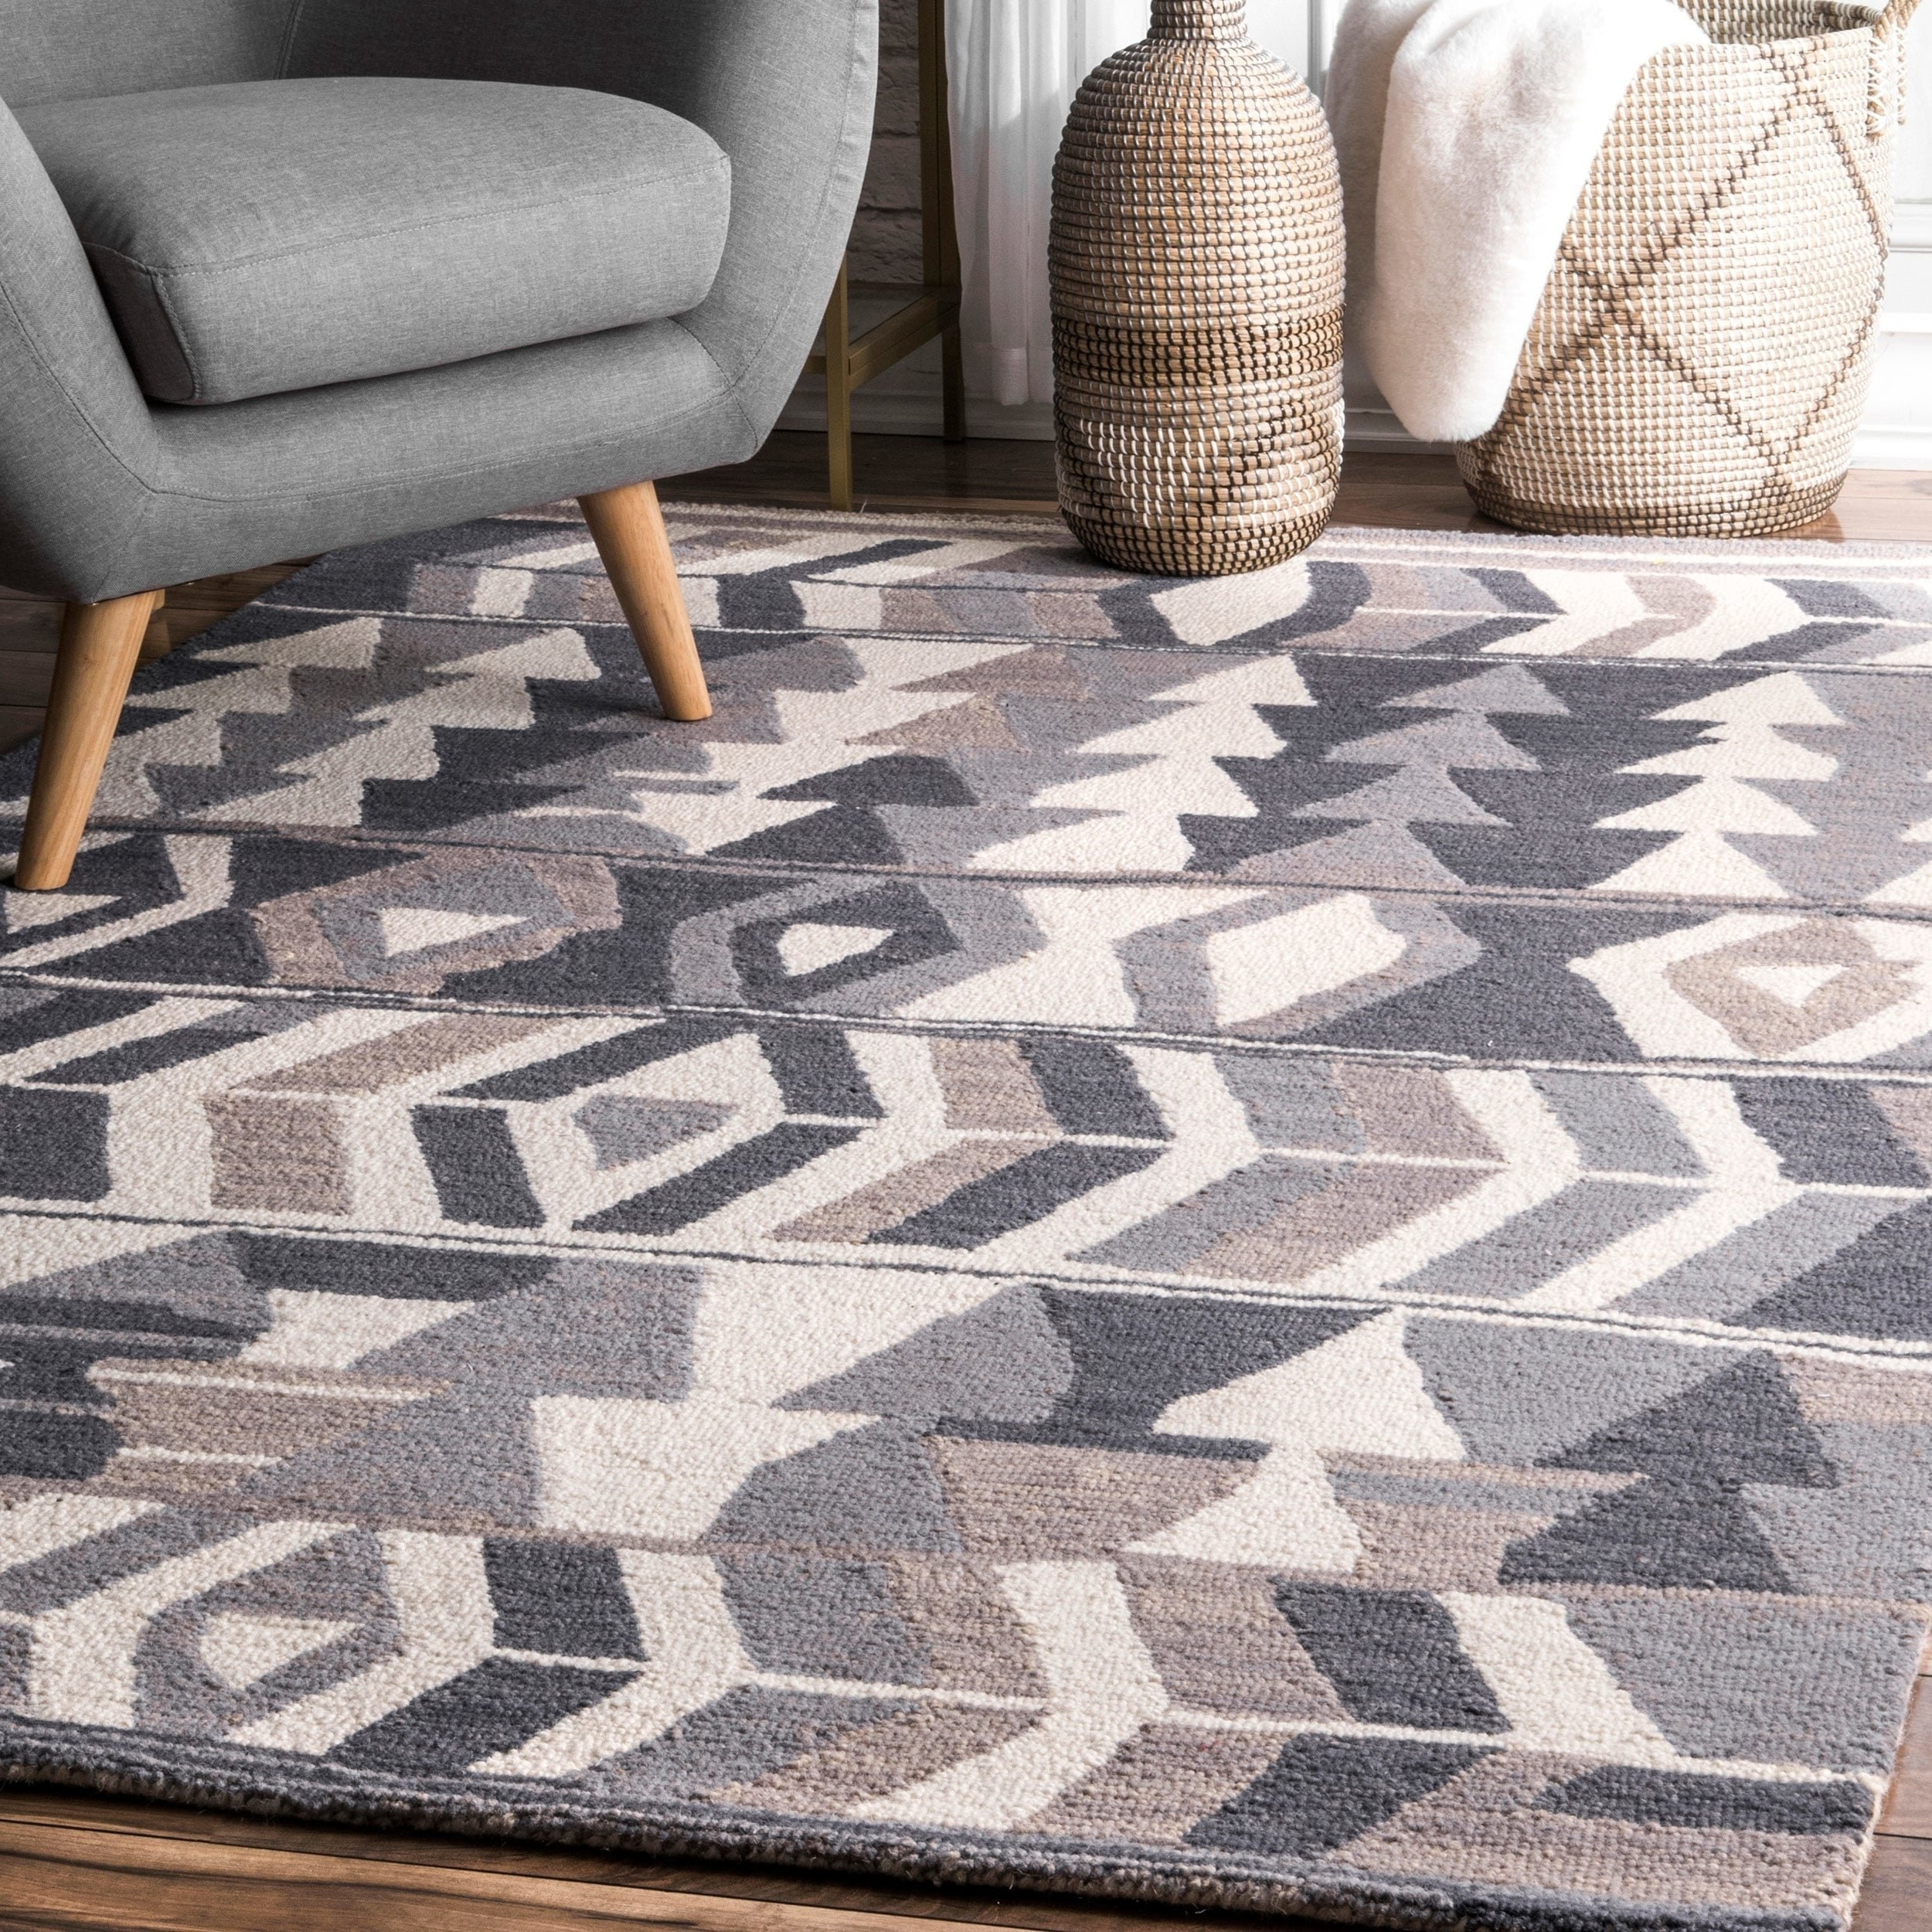 Emerita Multi-colored Modern Area Rug 27 x 73